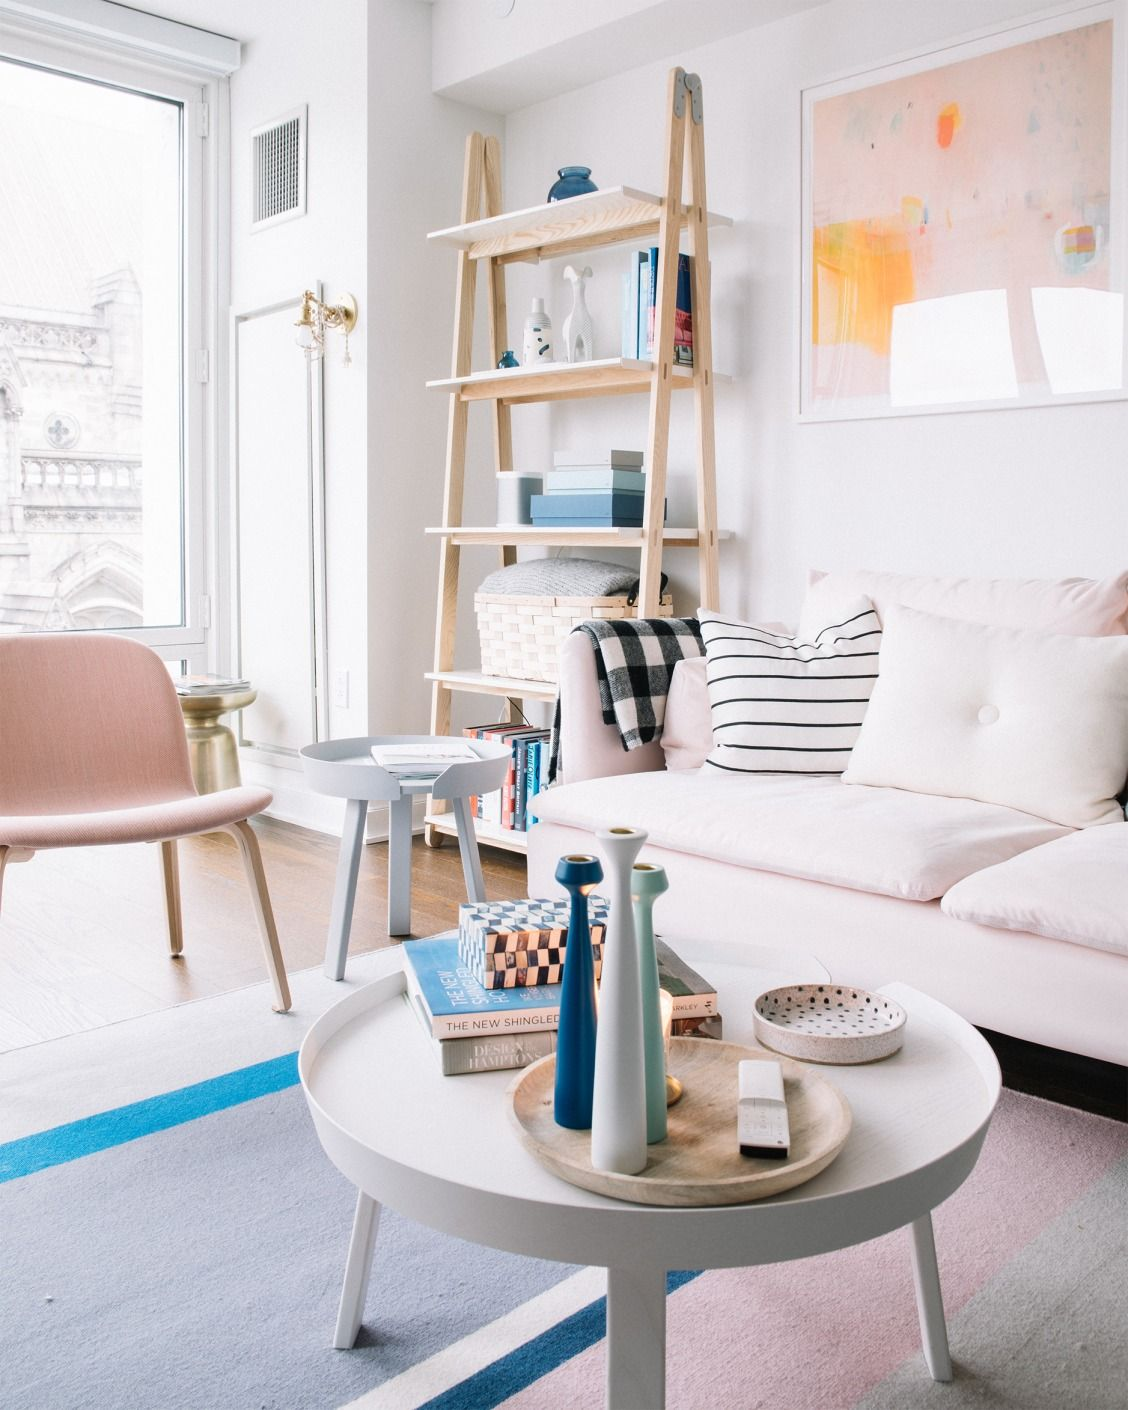 Millennial Pink Decorating Ideas From My Living Room | Home ...